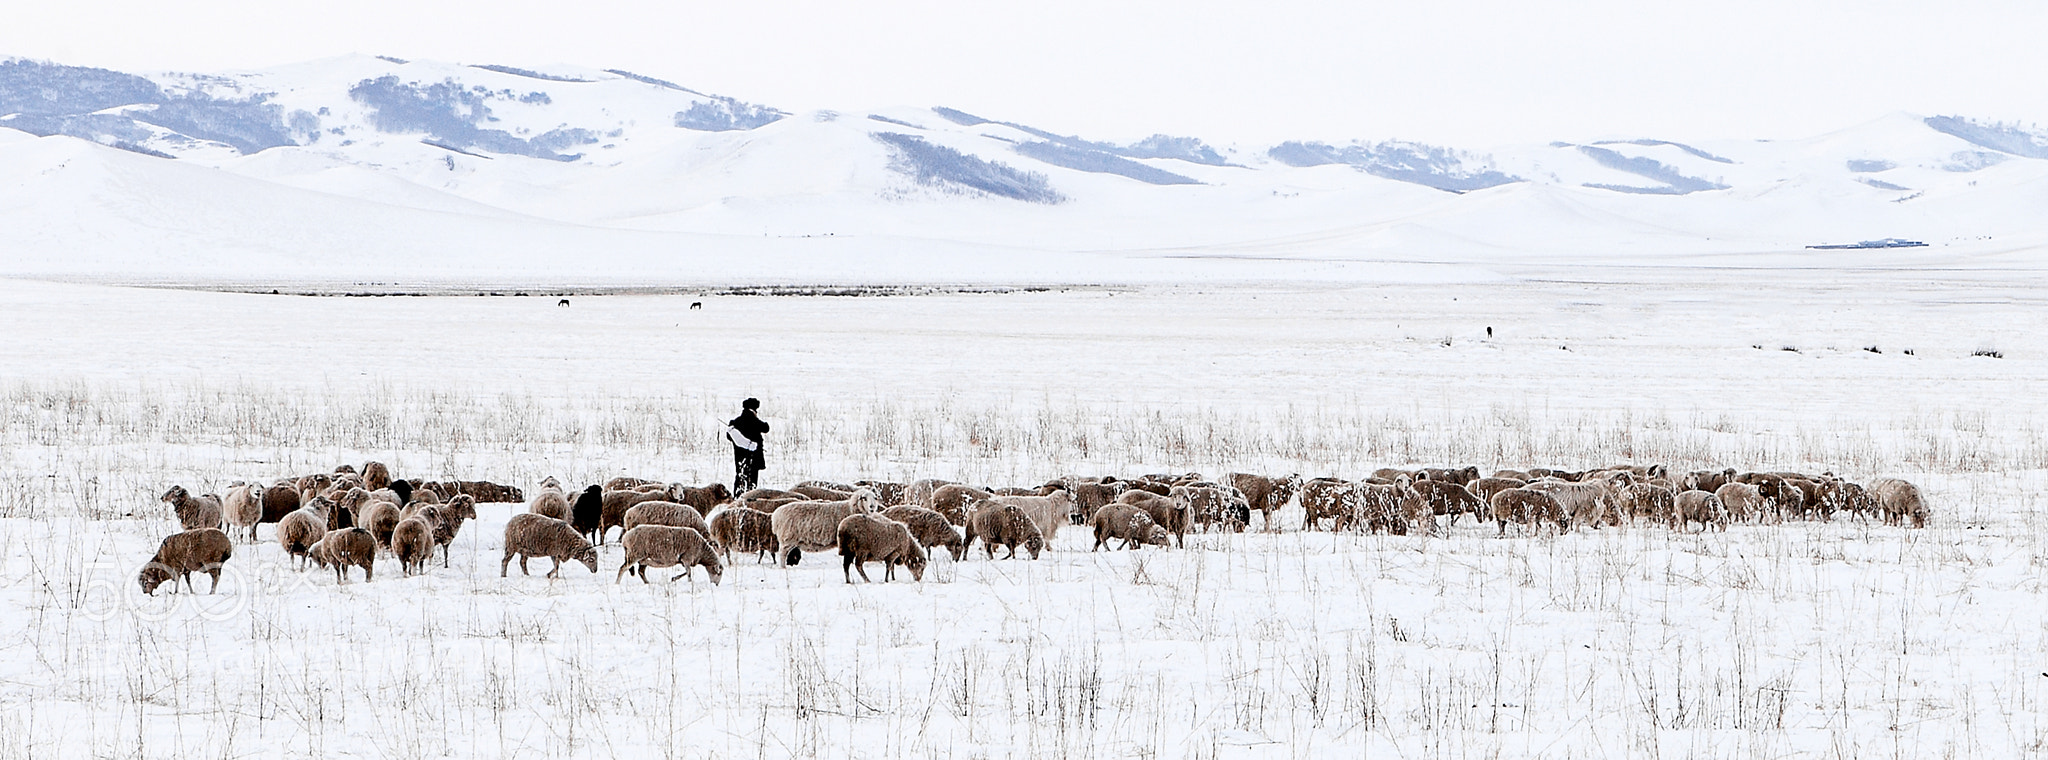 Photograph The lonely shepherd by qing yue on 500px